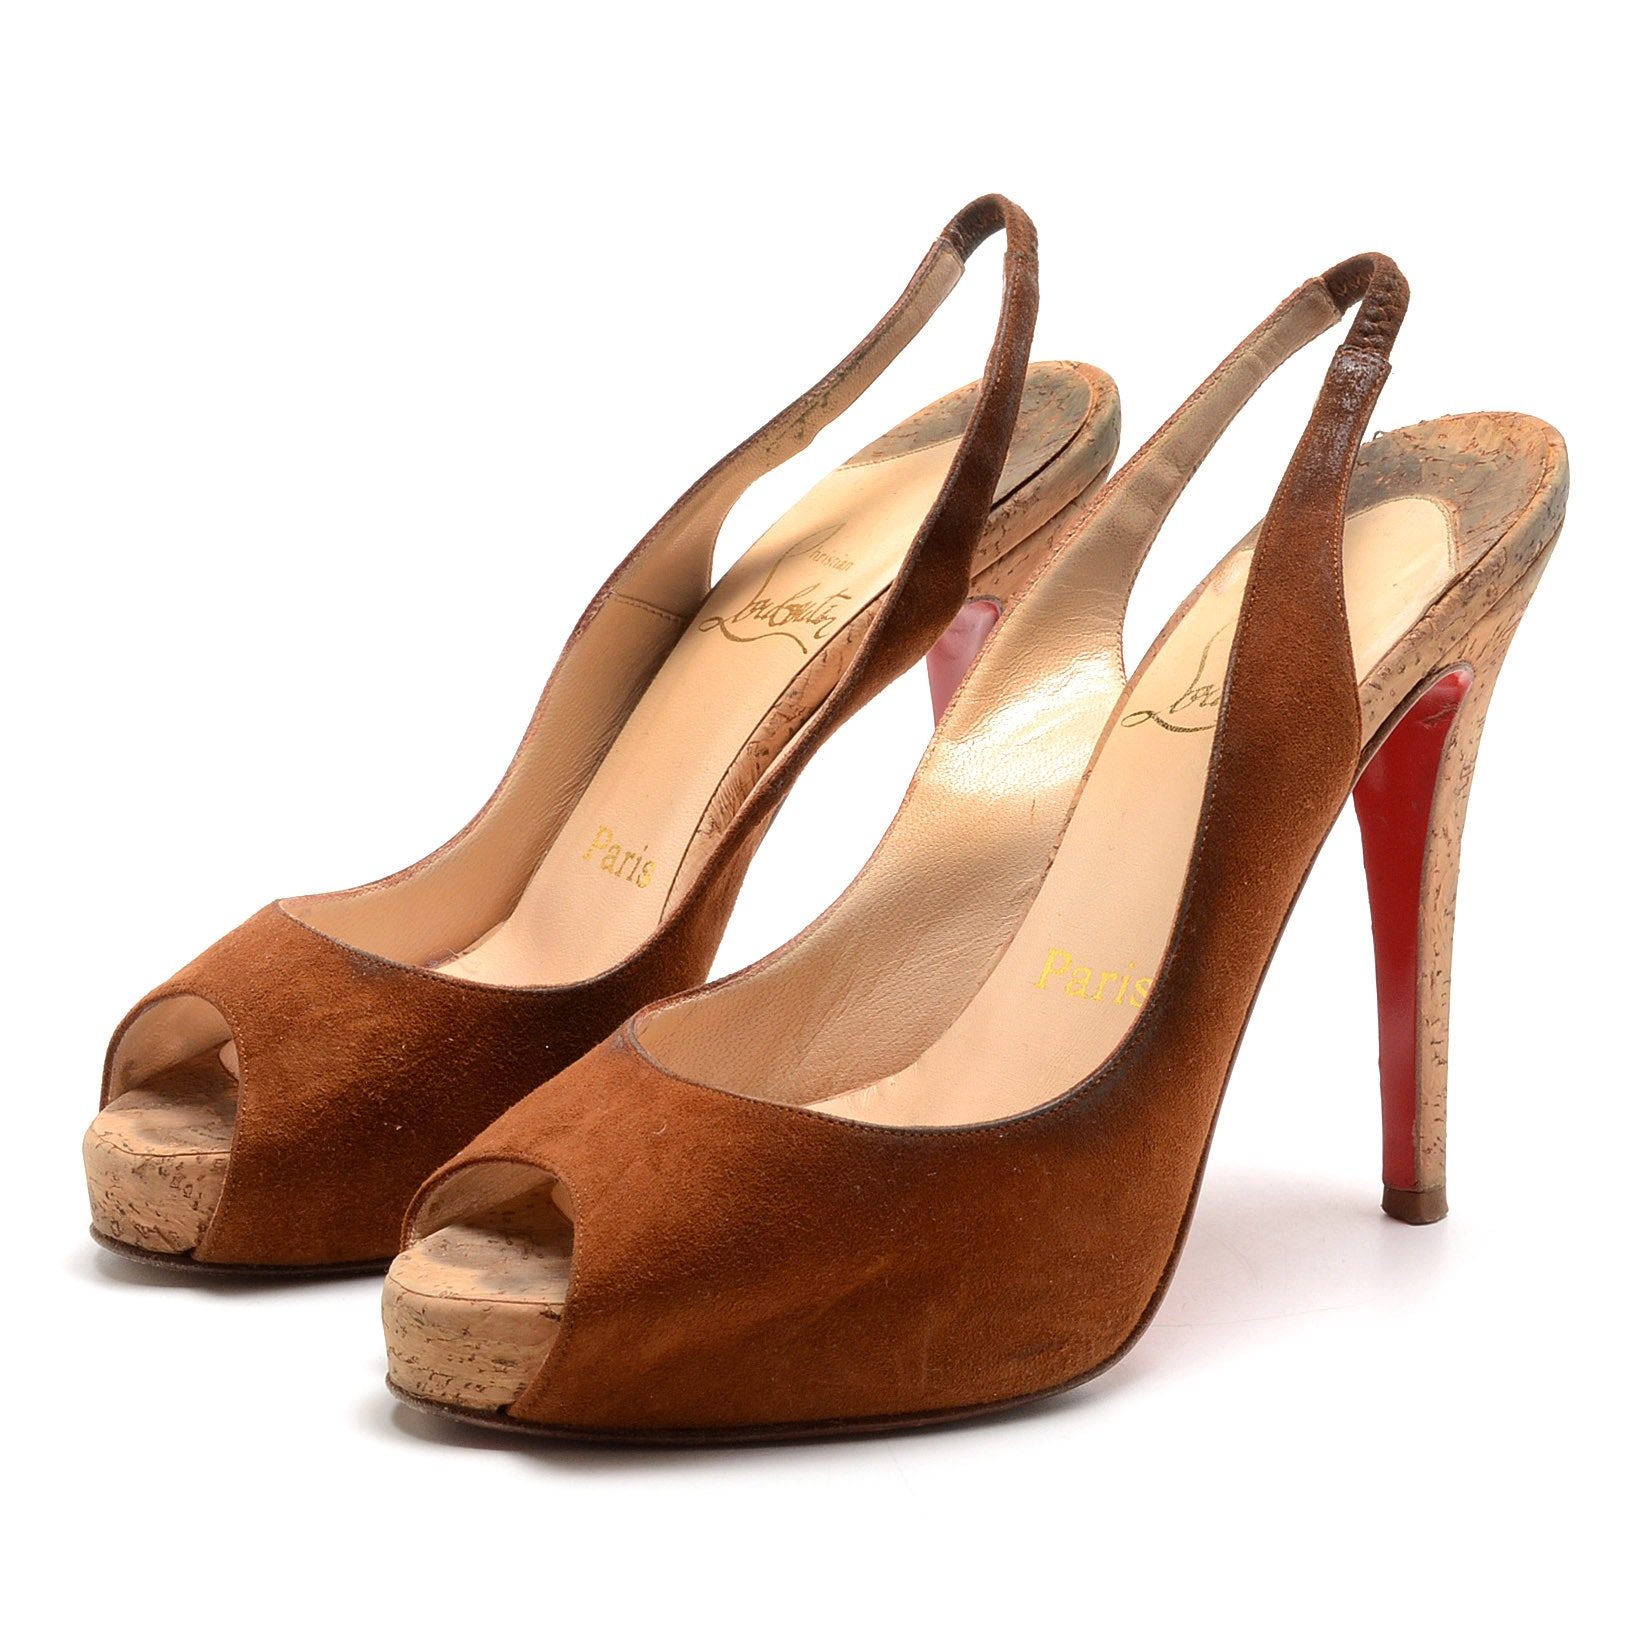 Christian Louboutin of Paris Golden Brown Suede Leather and Cork Heel Peep Toe Sling Backs